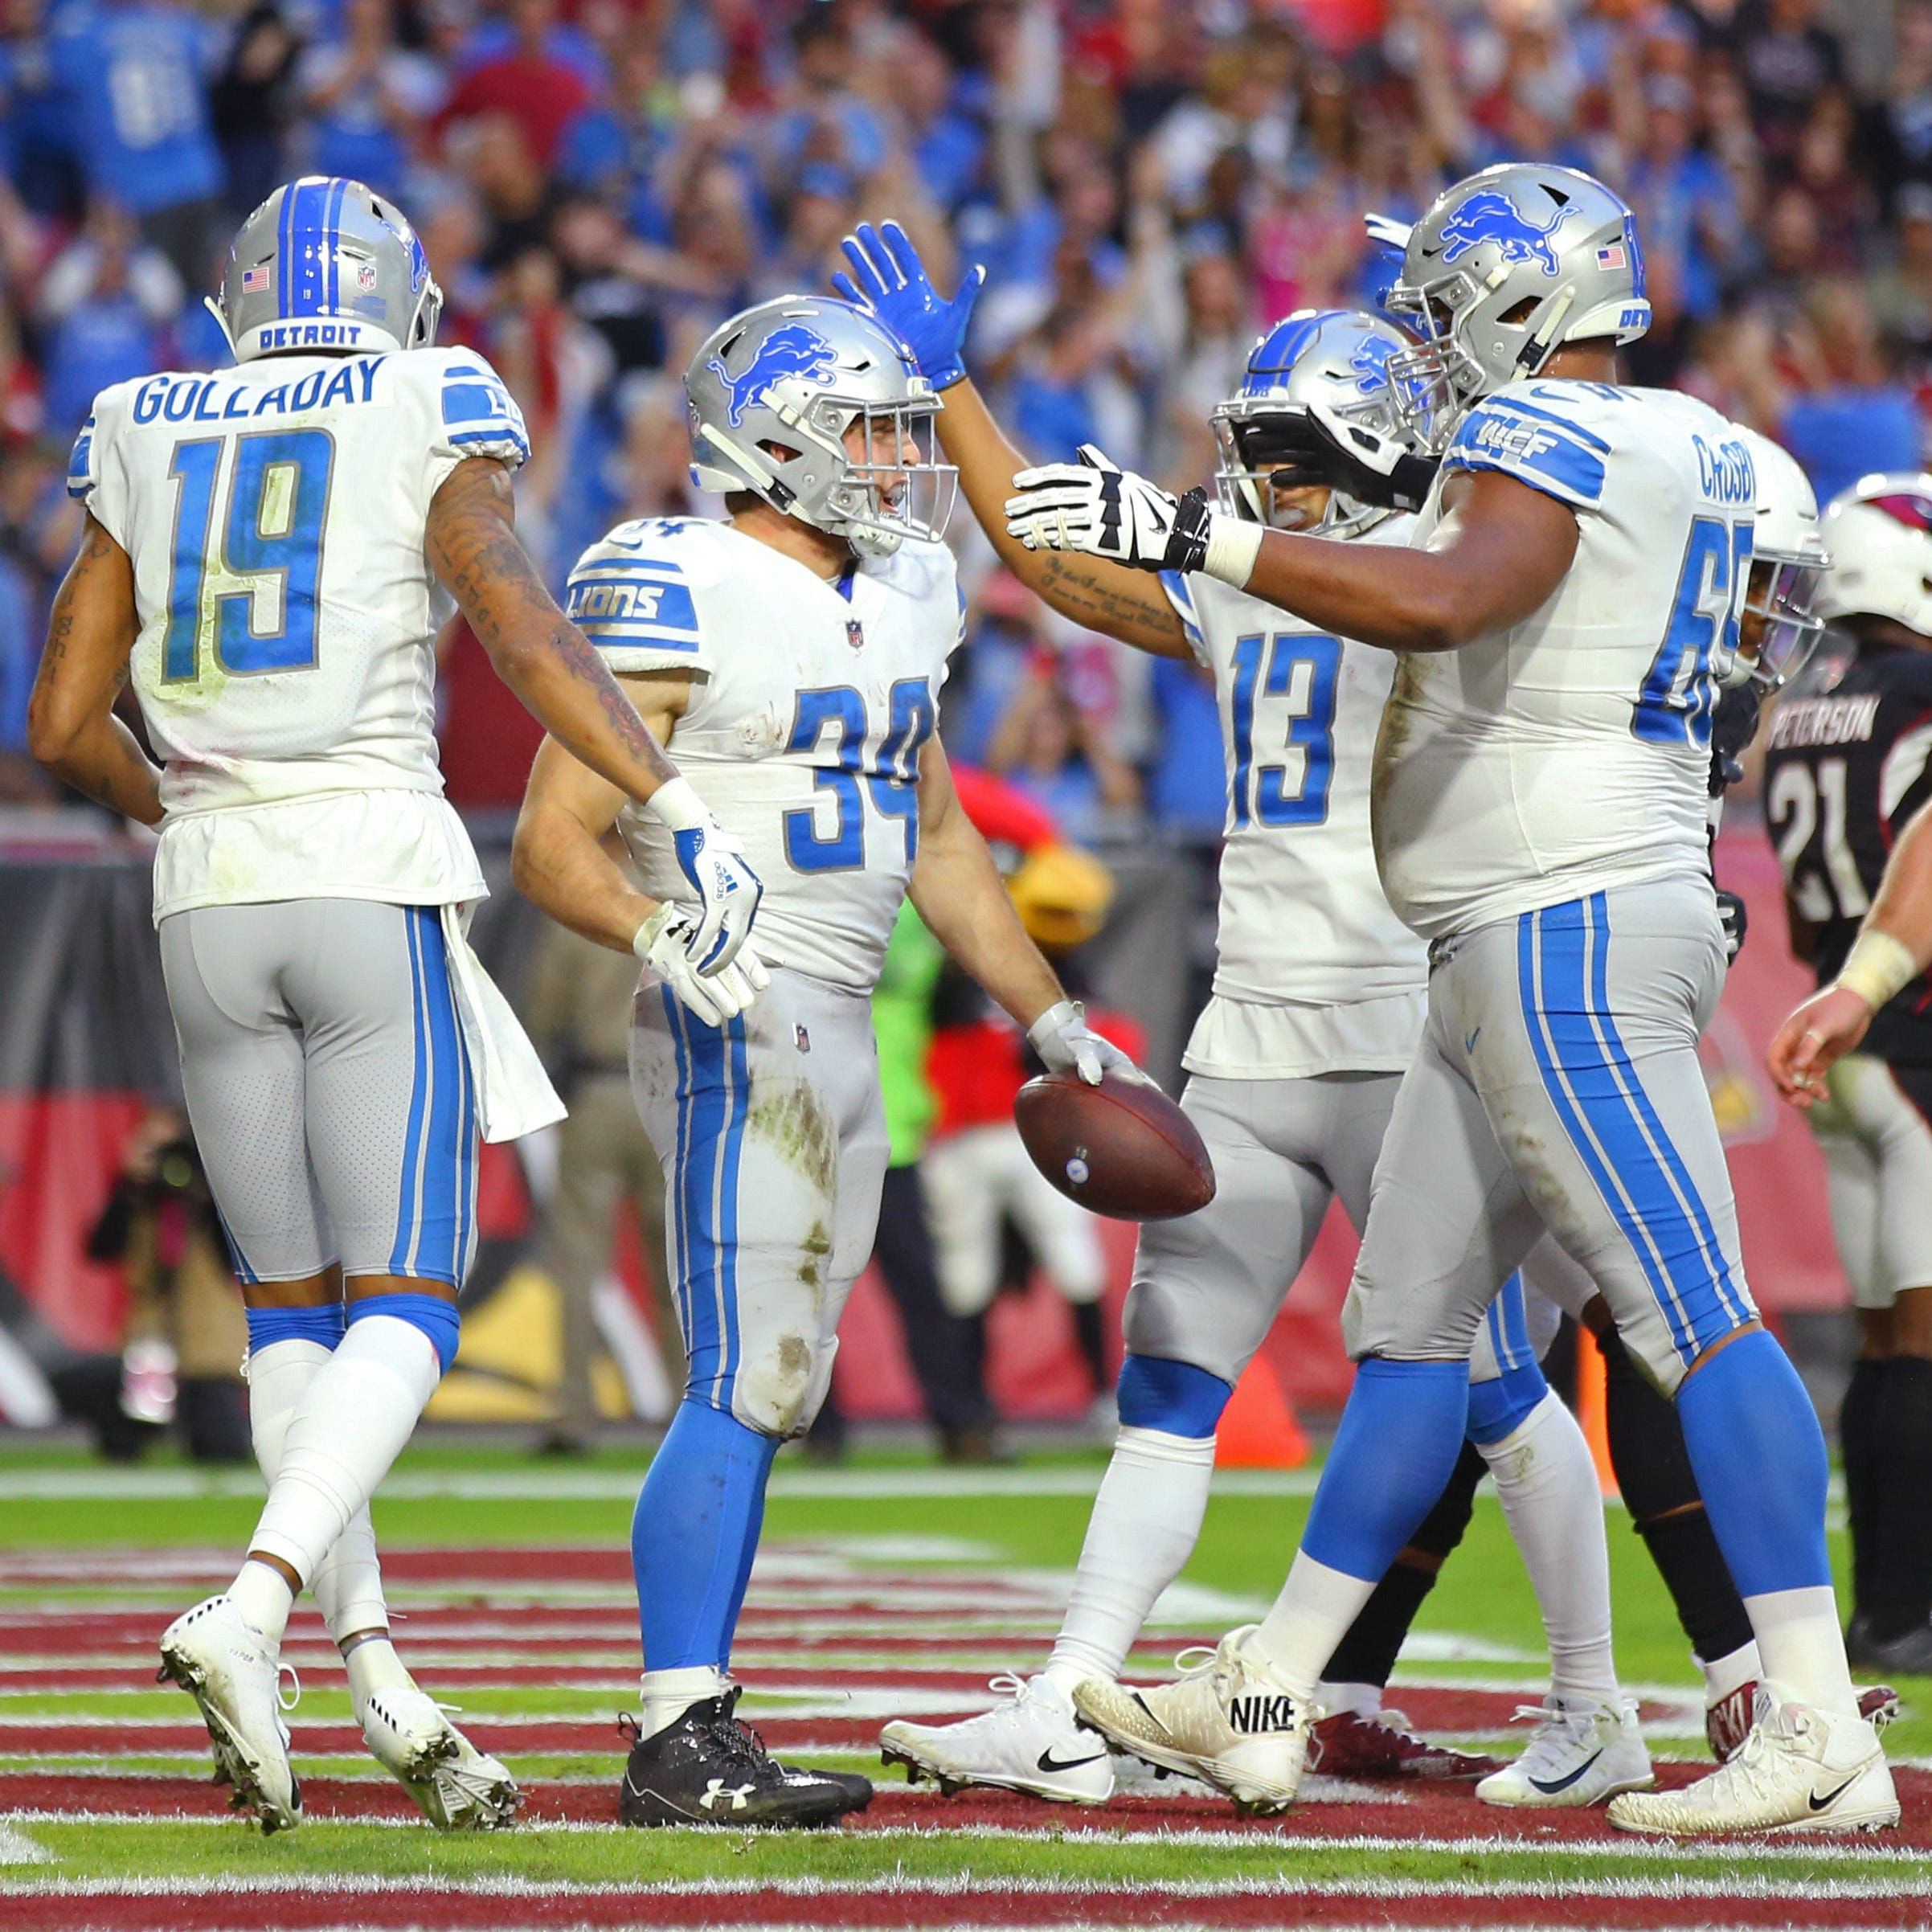 Detroit Lions haven't completely blown chance at high draft pick – yet